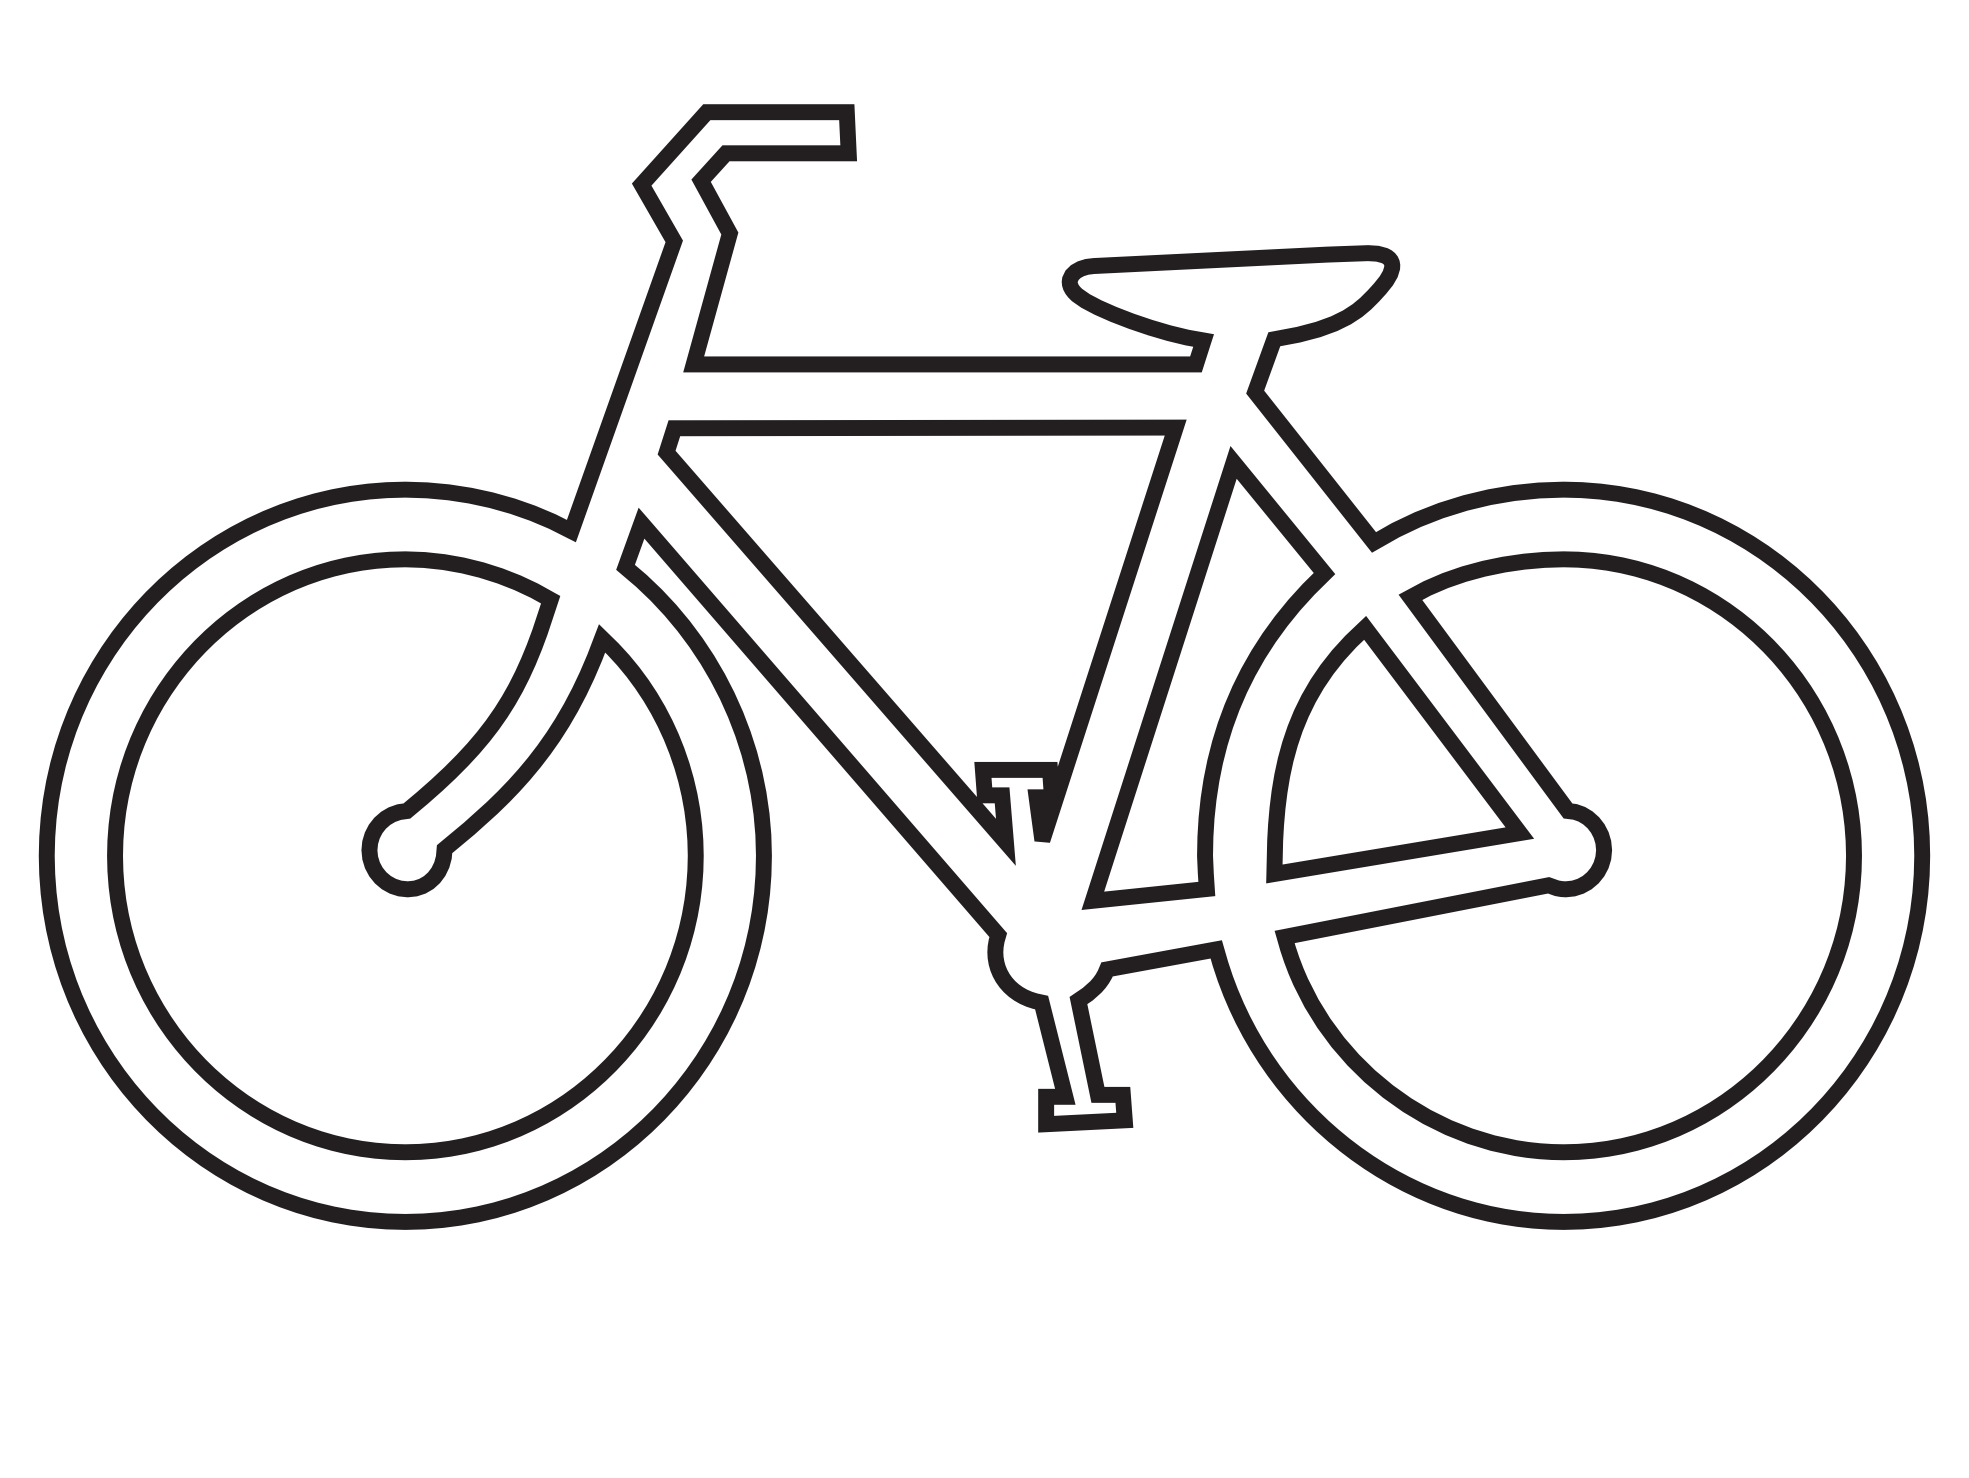 Clip Art: bicycle route sign black white line.